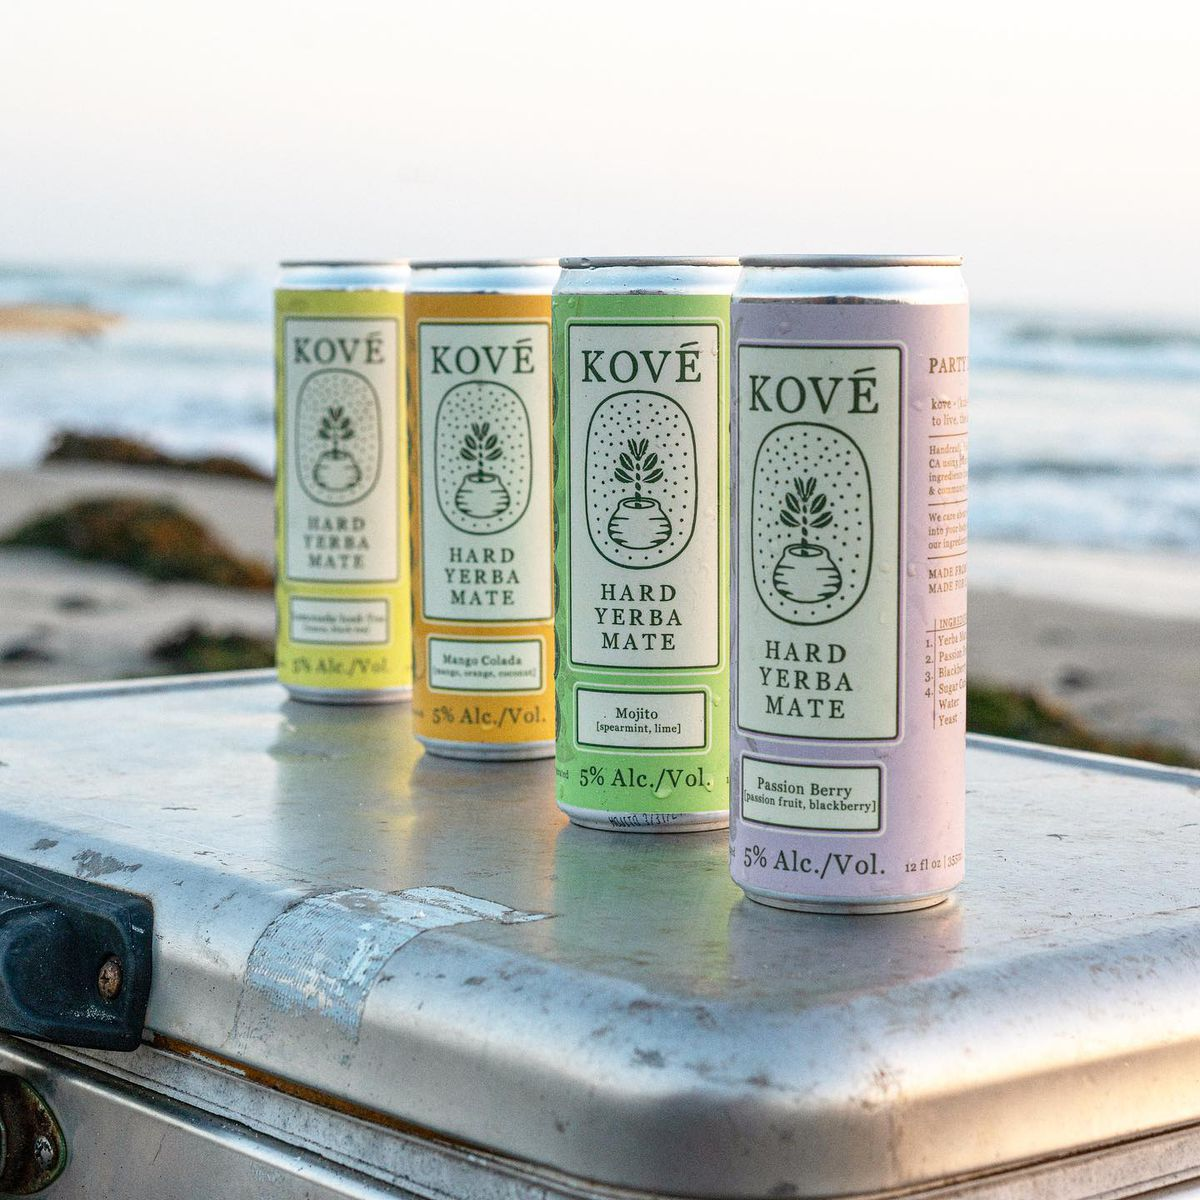 Four cans of Kove Hard Yerba Mate on a cooler at the beach